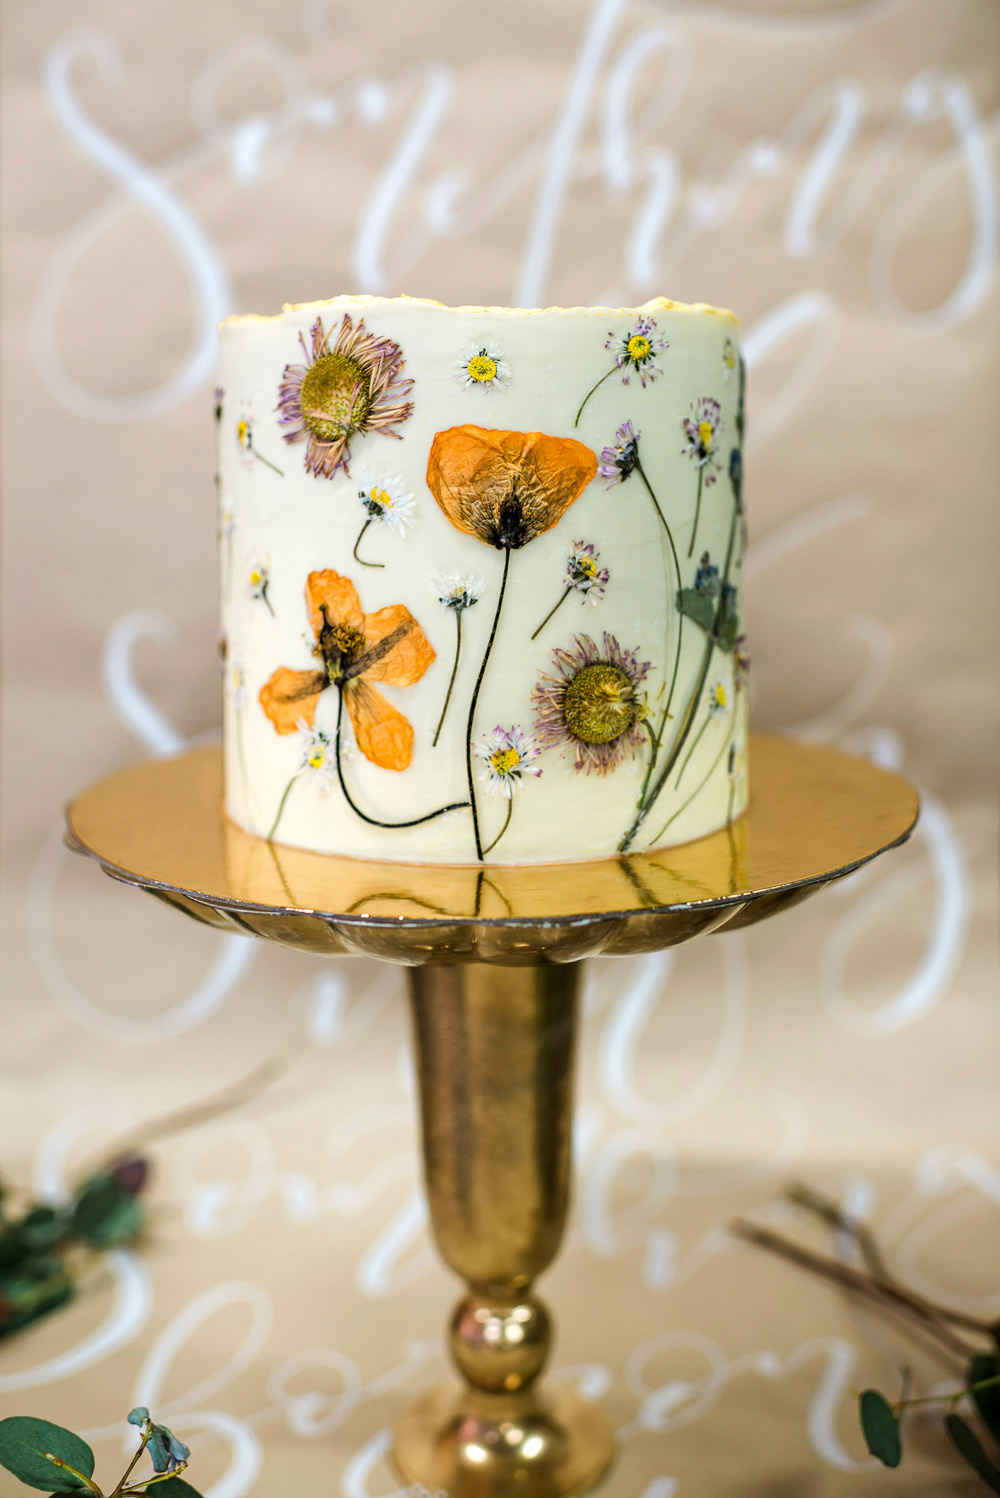 Cake Flowers Floral Petal Edible Pressed Flowers Indie Wedding Ideas Kat Antos-Lewis Photography